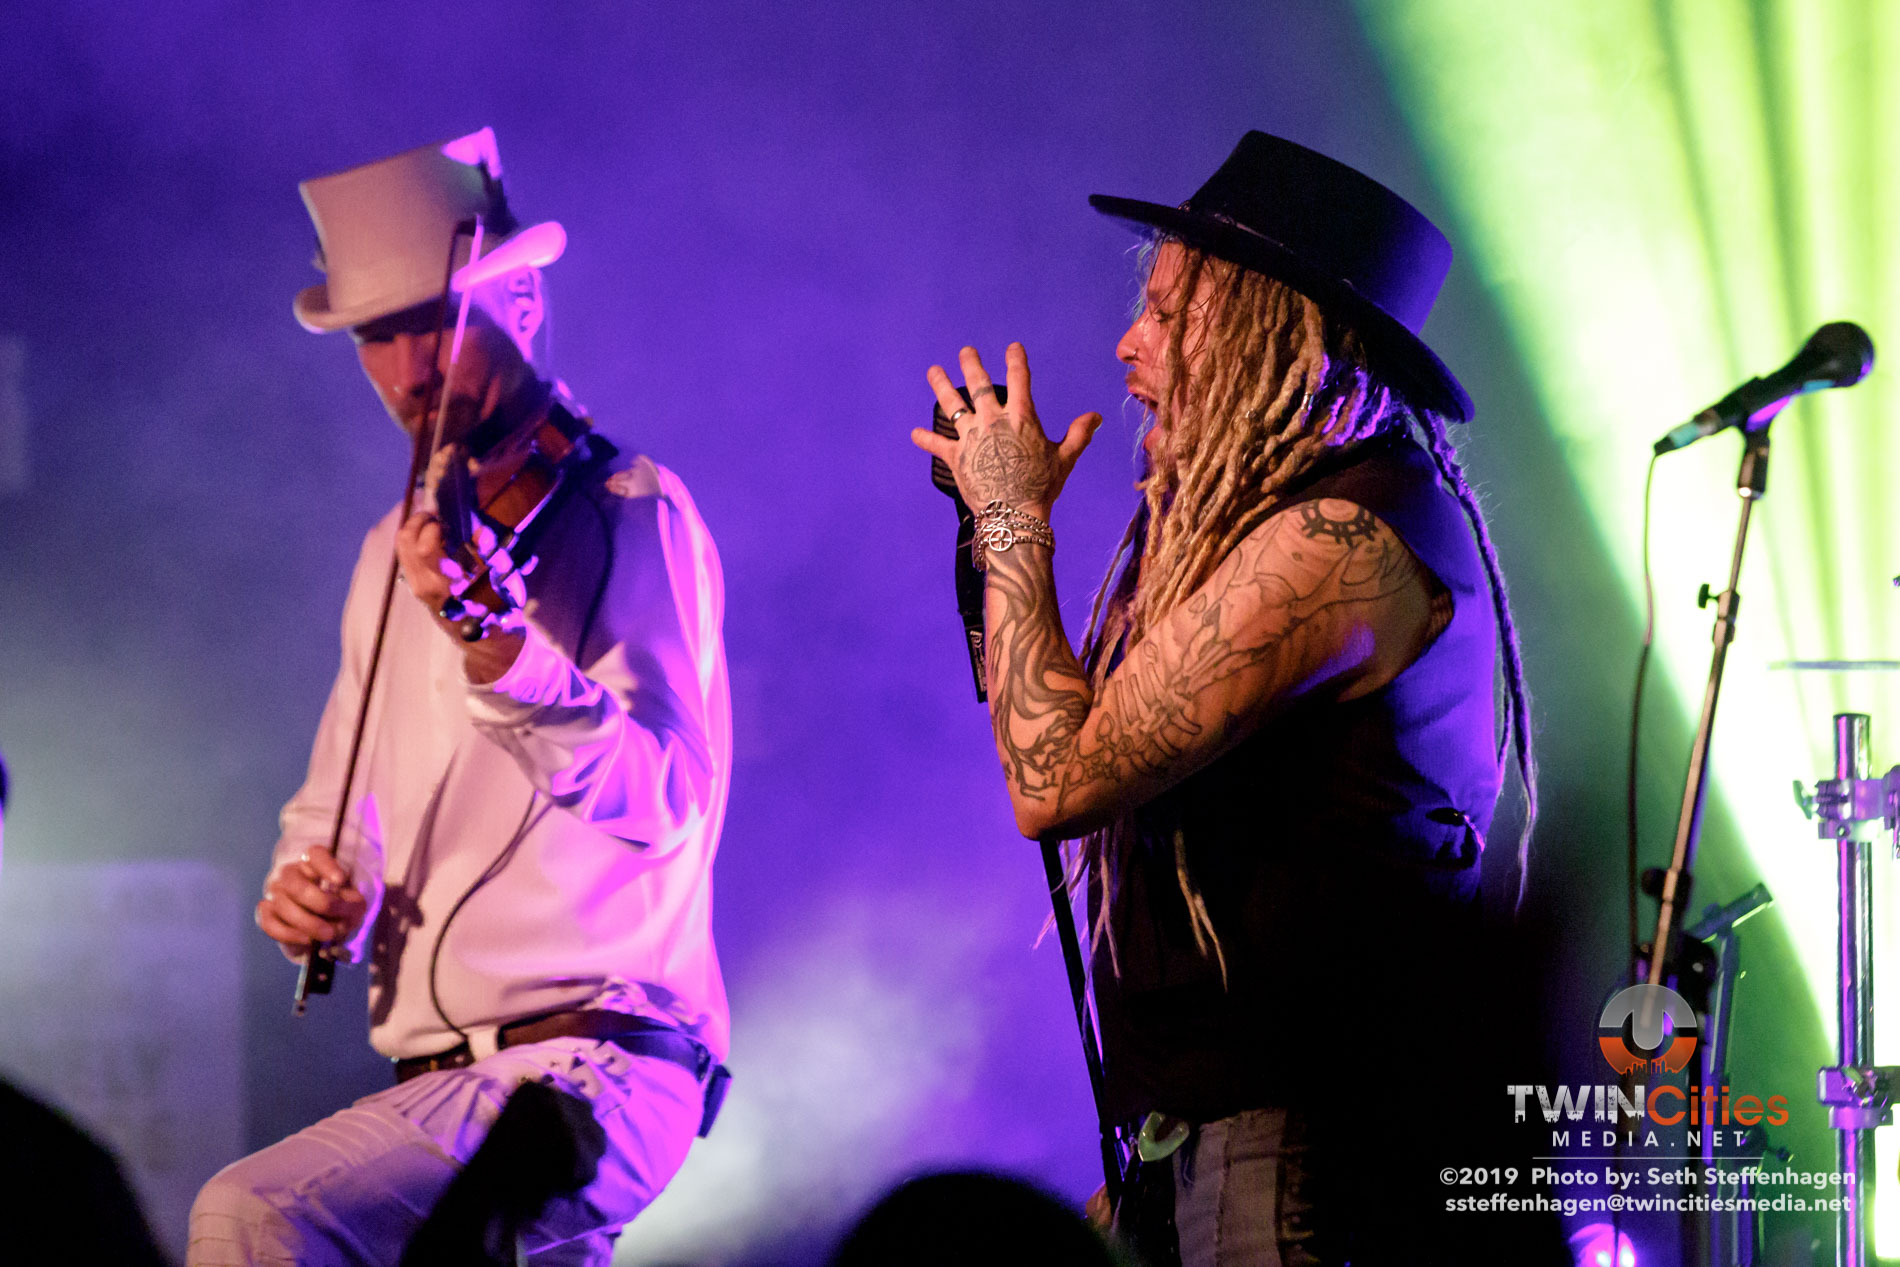 October 5, 2019 - Minneapolis, Minnesota, United States - Korpiklaani live in concert at The Cabooze co-headlining with Eluveitie and with Gone In April as the openers.  (Photo by Seth Steffenhagen/Steffenhagen Photography)